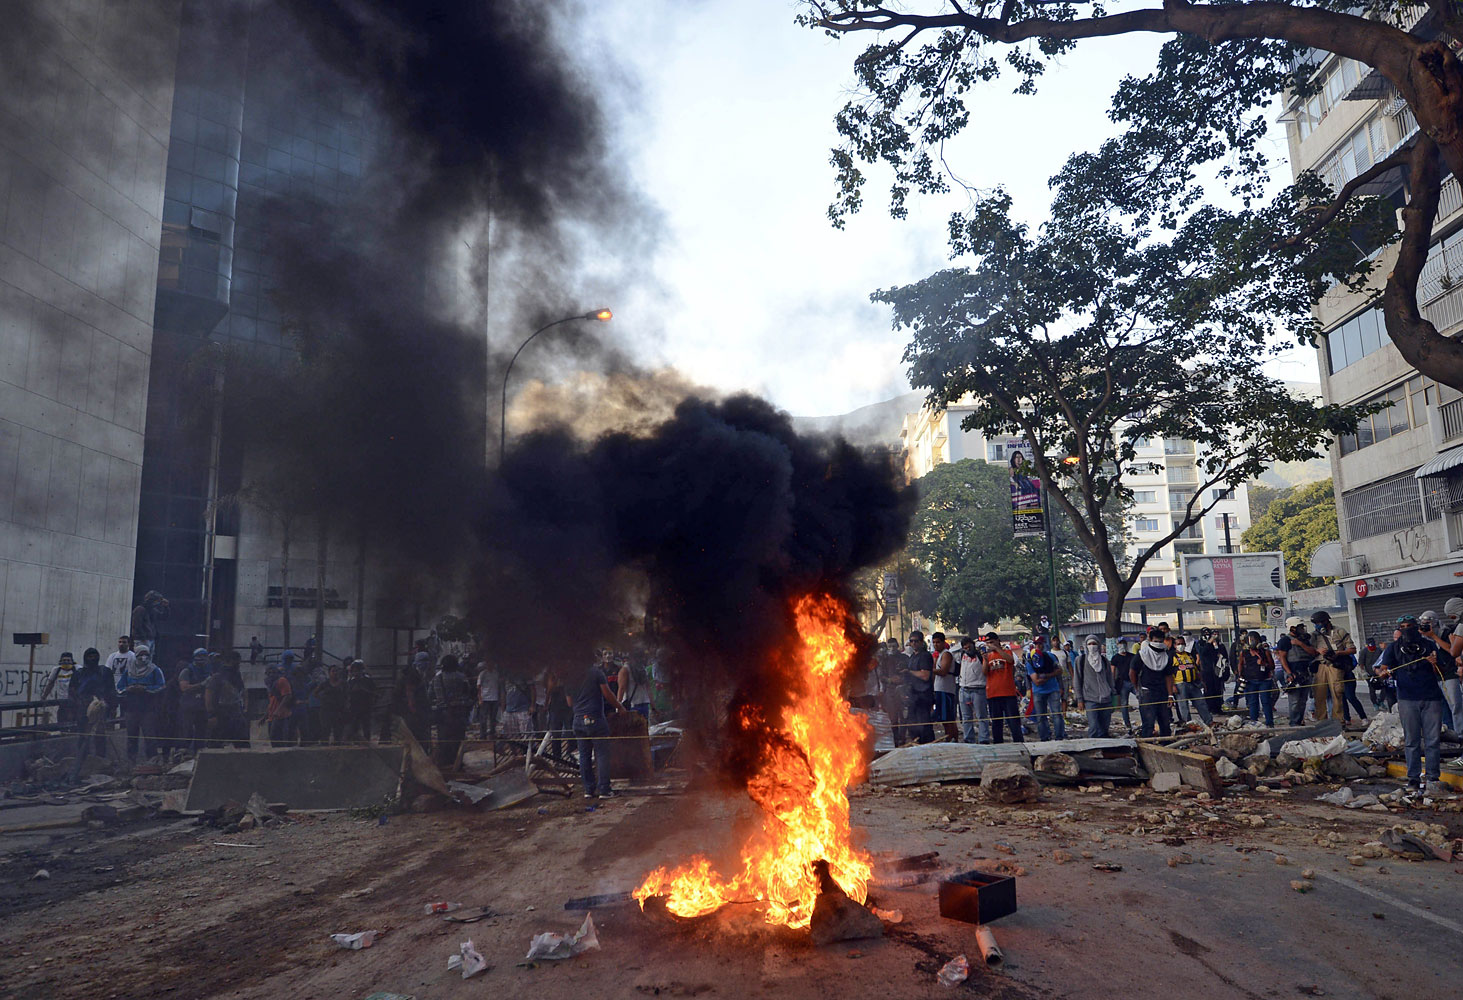 Opposition demonstrators set a fire by a barricade as they protest against the government of Venezuelan President Nicolas Maduro in Caracas on March 4, 2014.